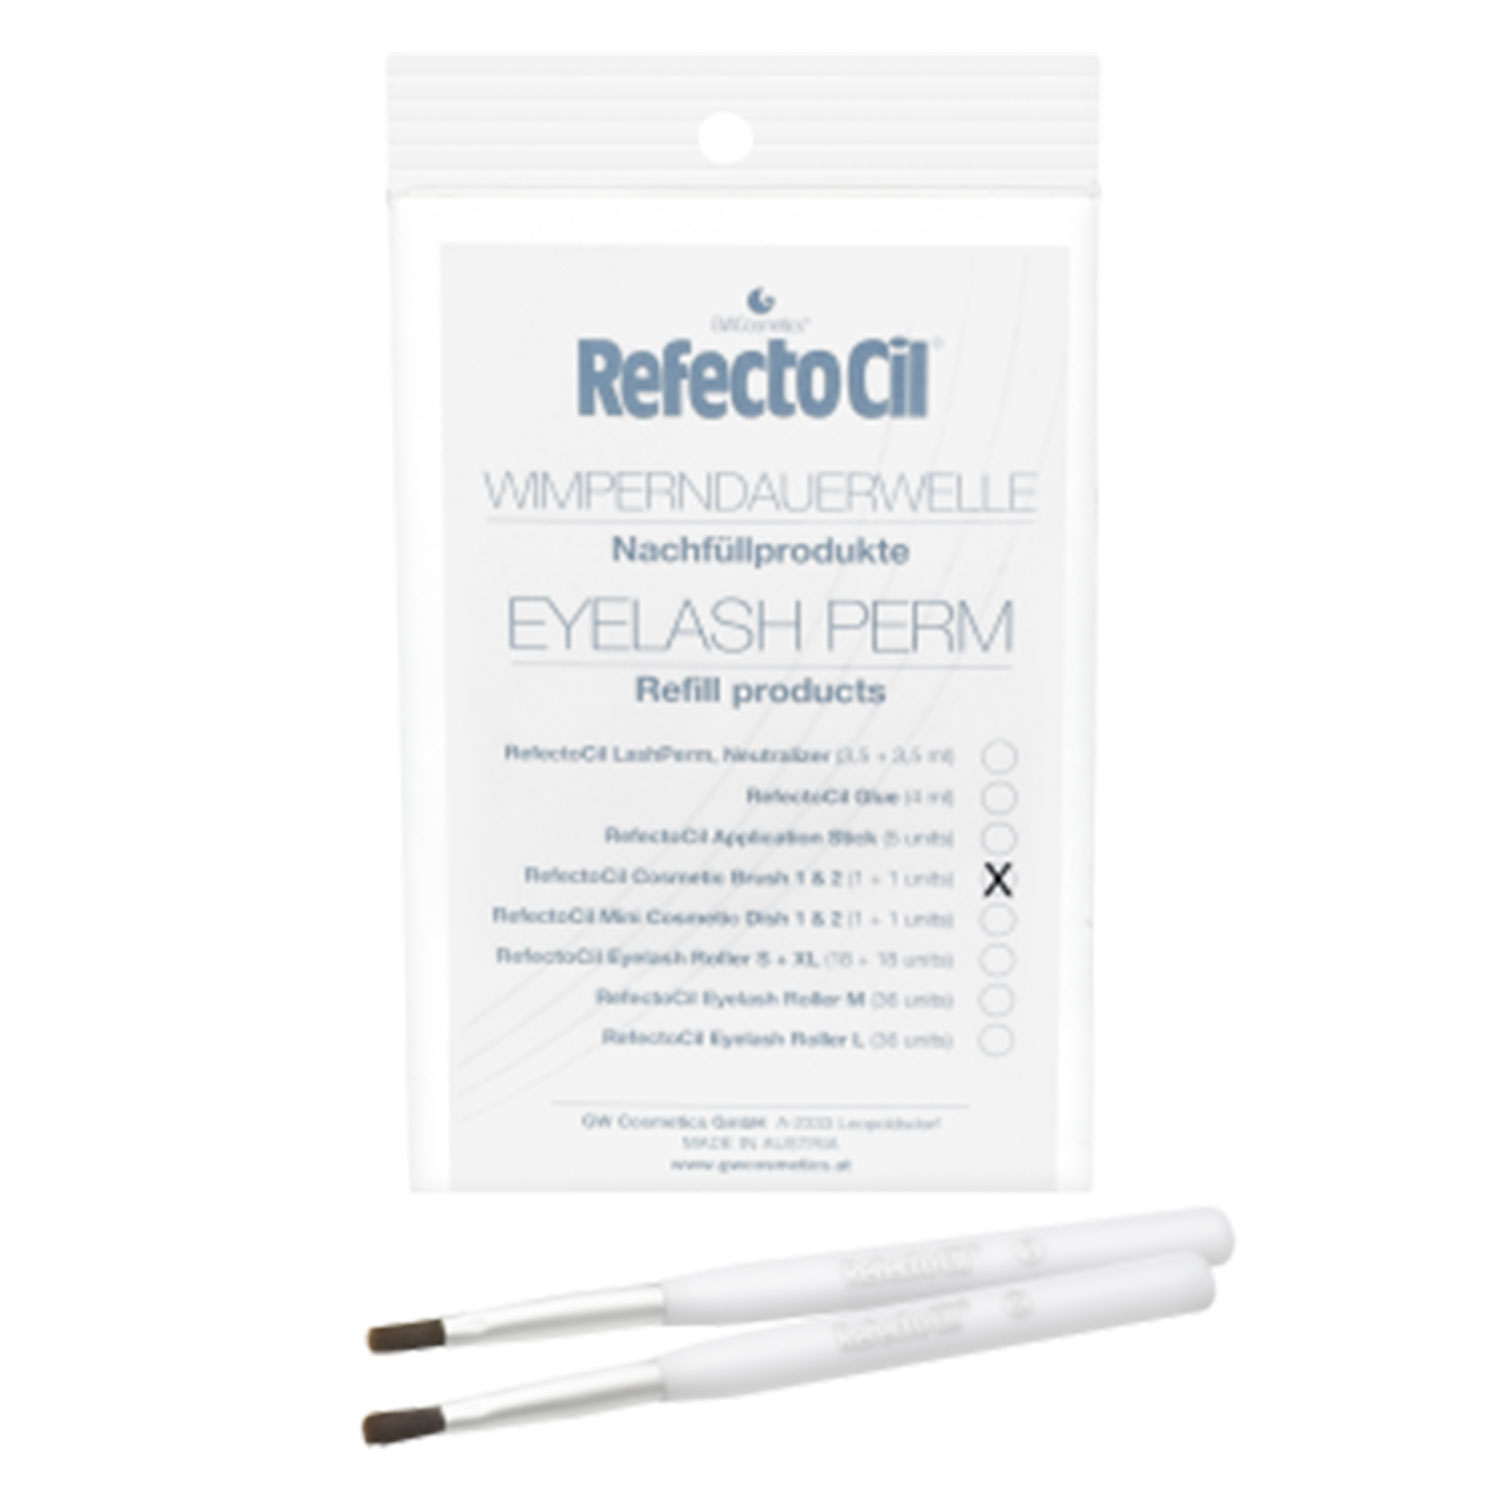 RefectoCil - Cosmetic Brush 1 & 2